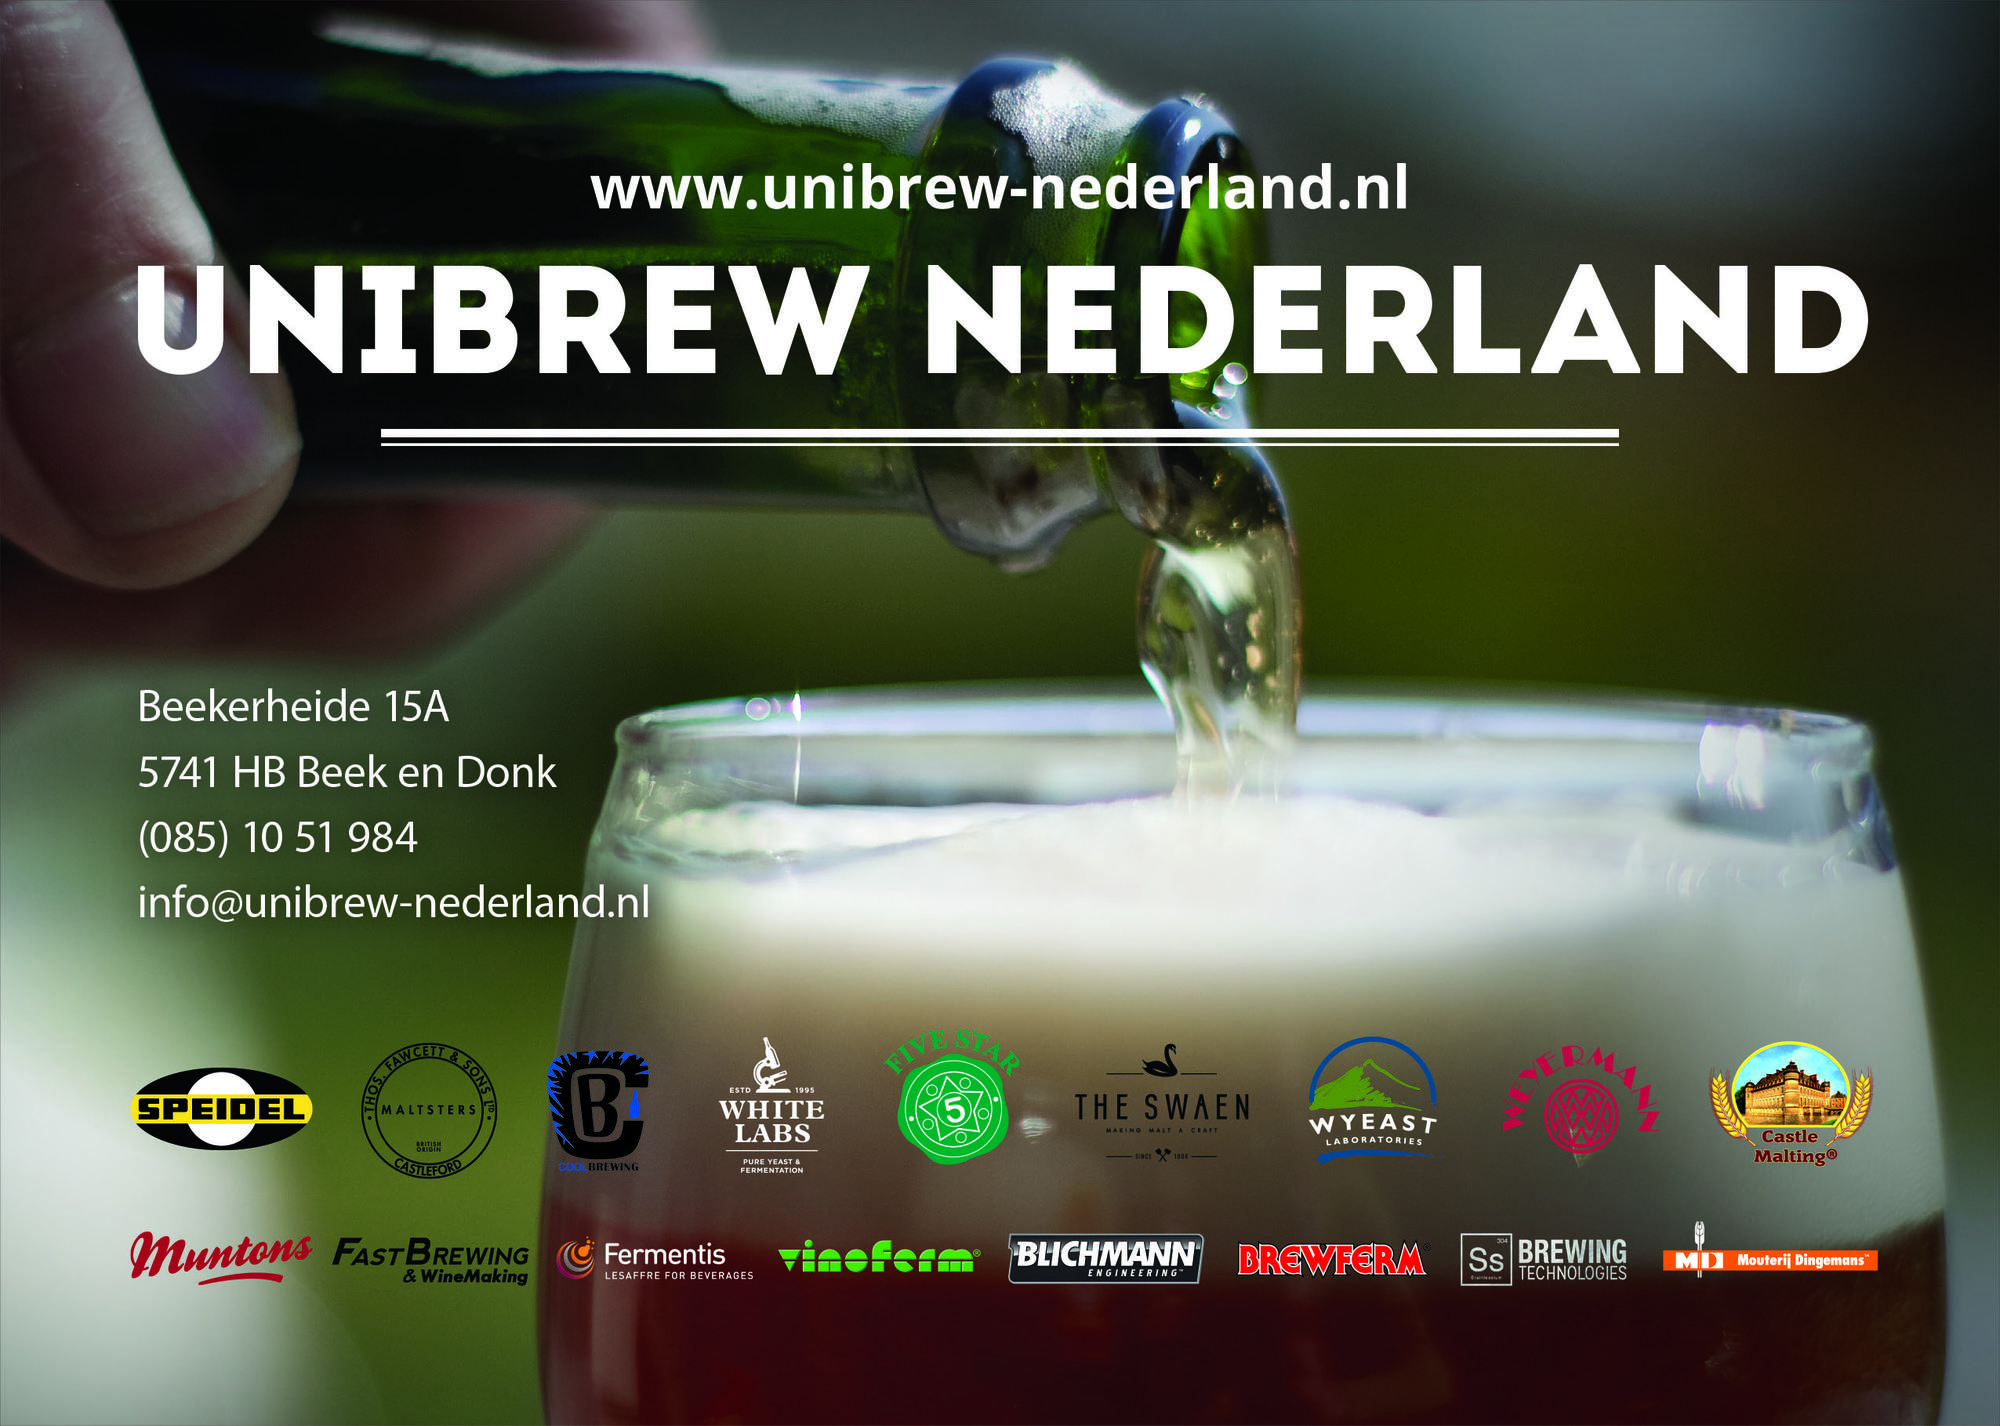 Unibrew_advertentie_large.jpg